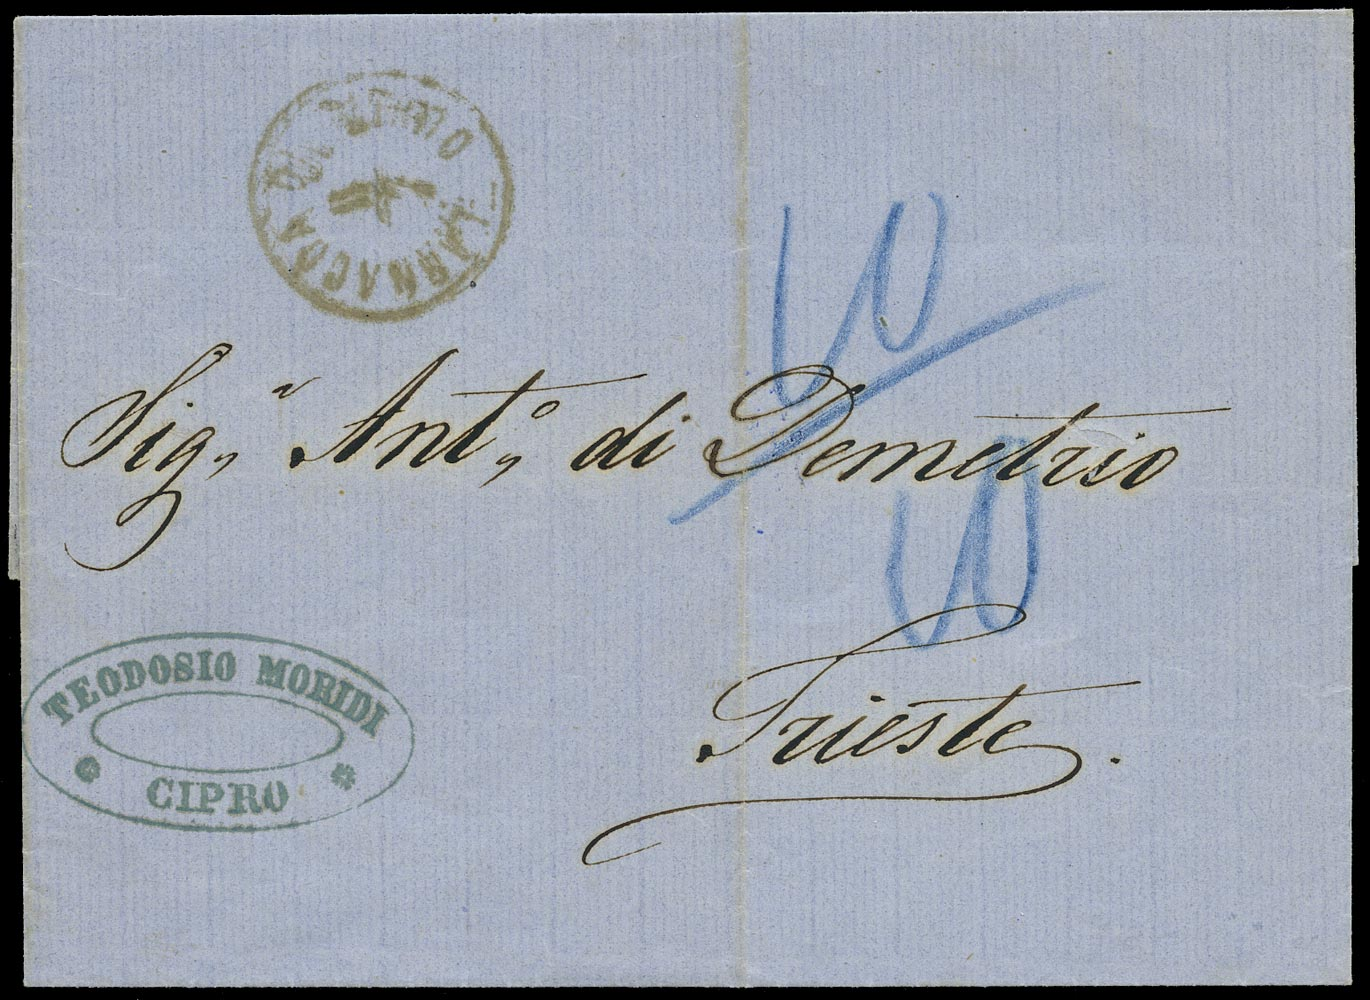 CYPRUS 1868 Cover from the Austrian Post Office at Larnaca to Trieste